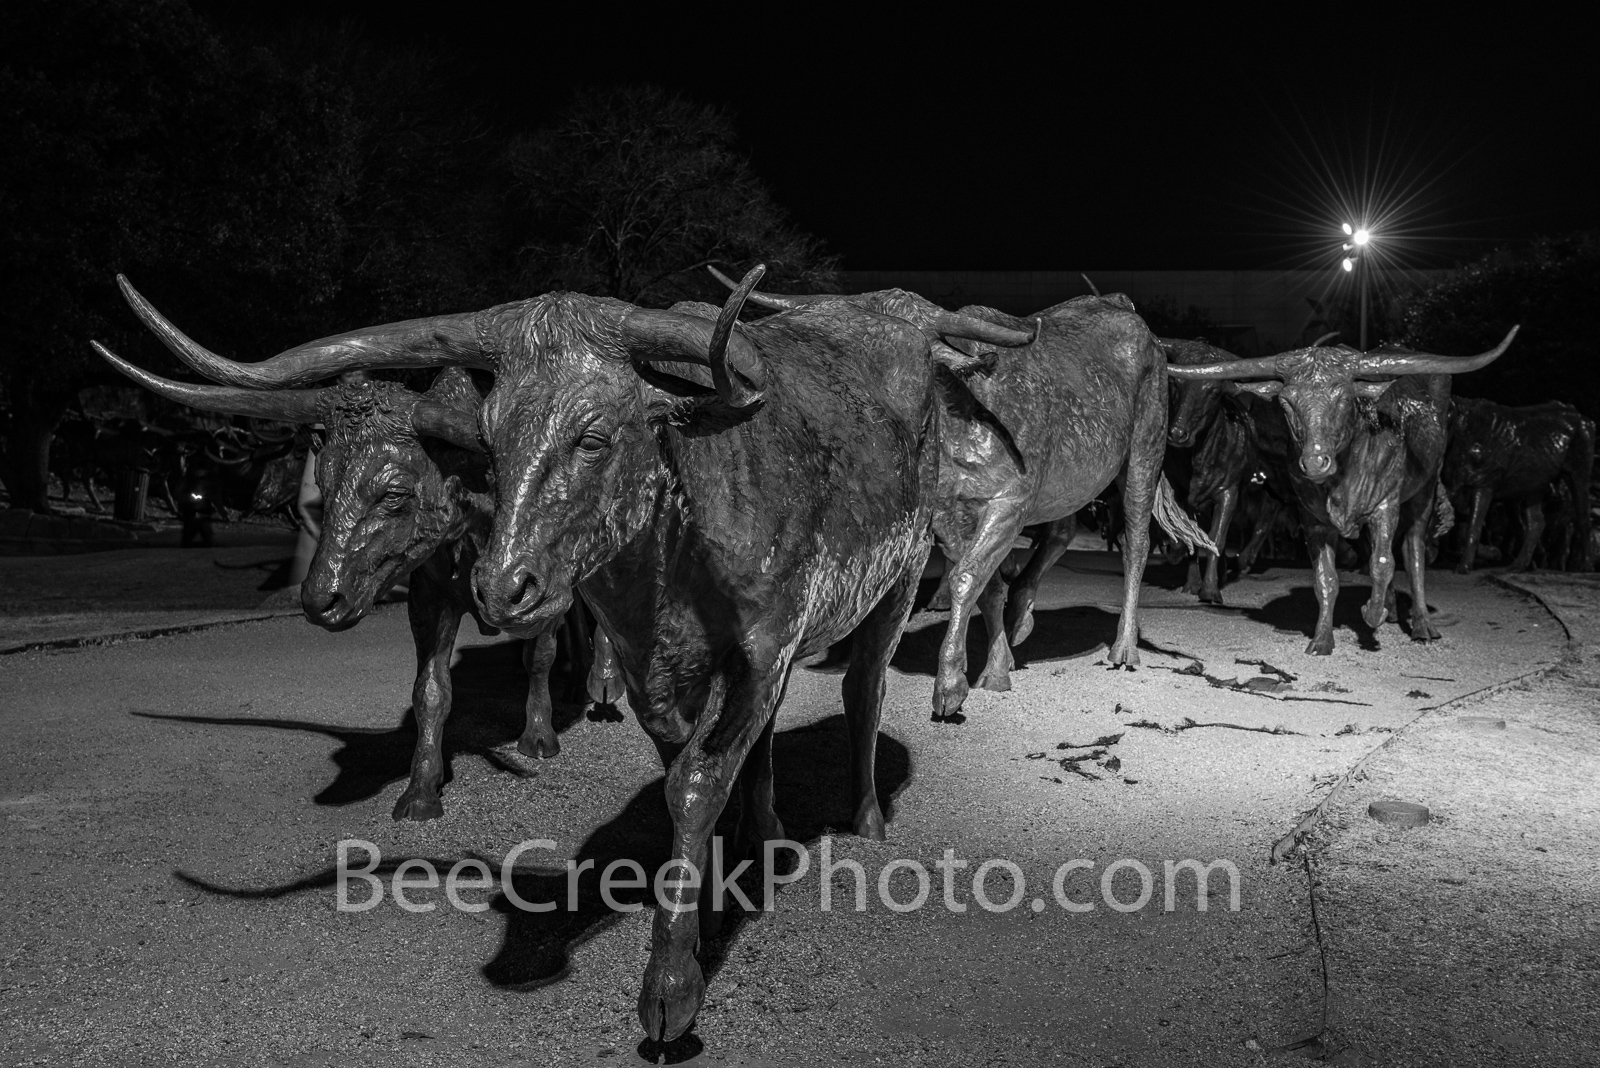 Pioneer plaza, downtown dallas, city of dallas, longhorns, bronze, statues, Dallas Bronze Longhorns,  dallas convention center, Shawnee trail, art, downtown, dallas parks, texas, black and white,, photo